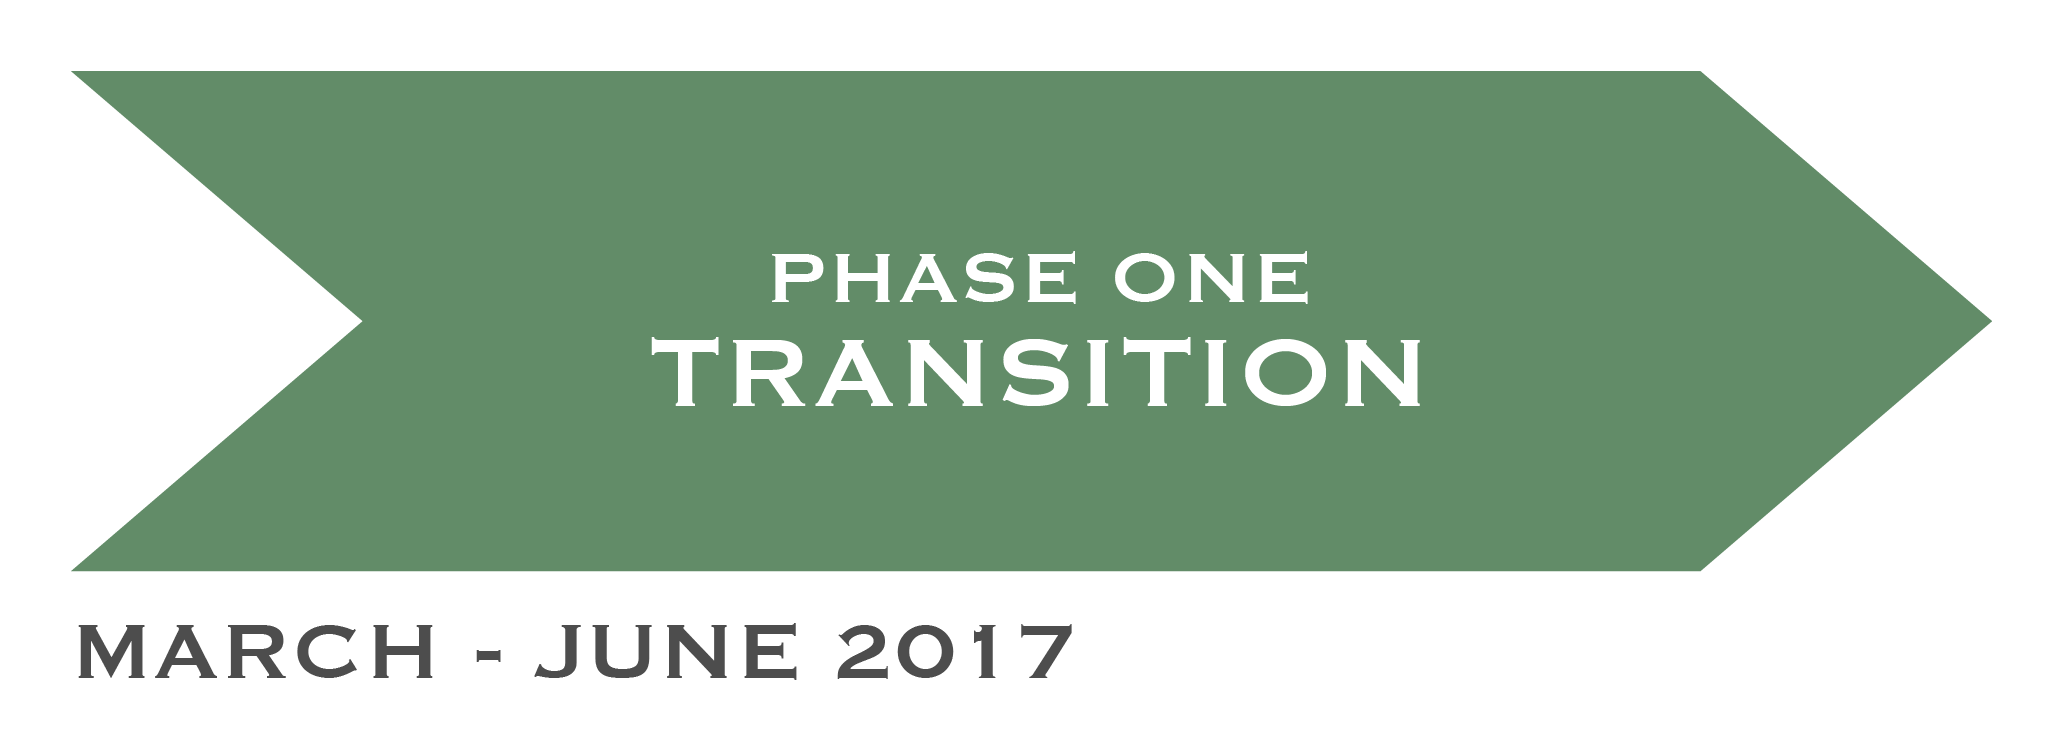 Phase One - Transition - March – June 2017